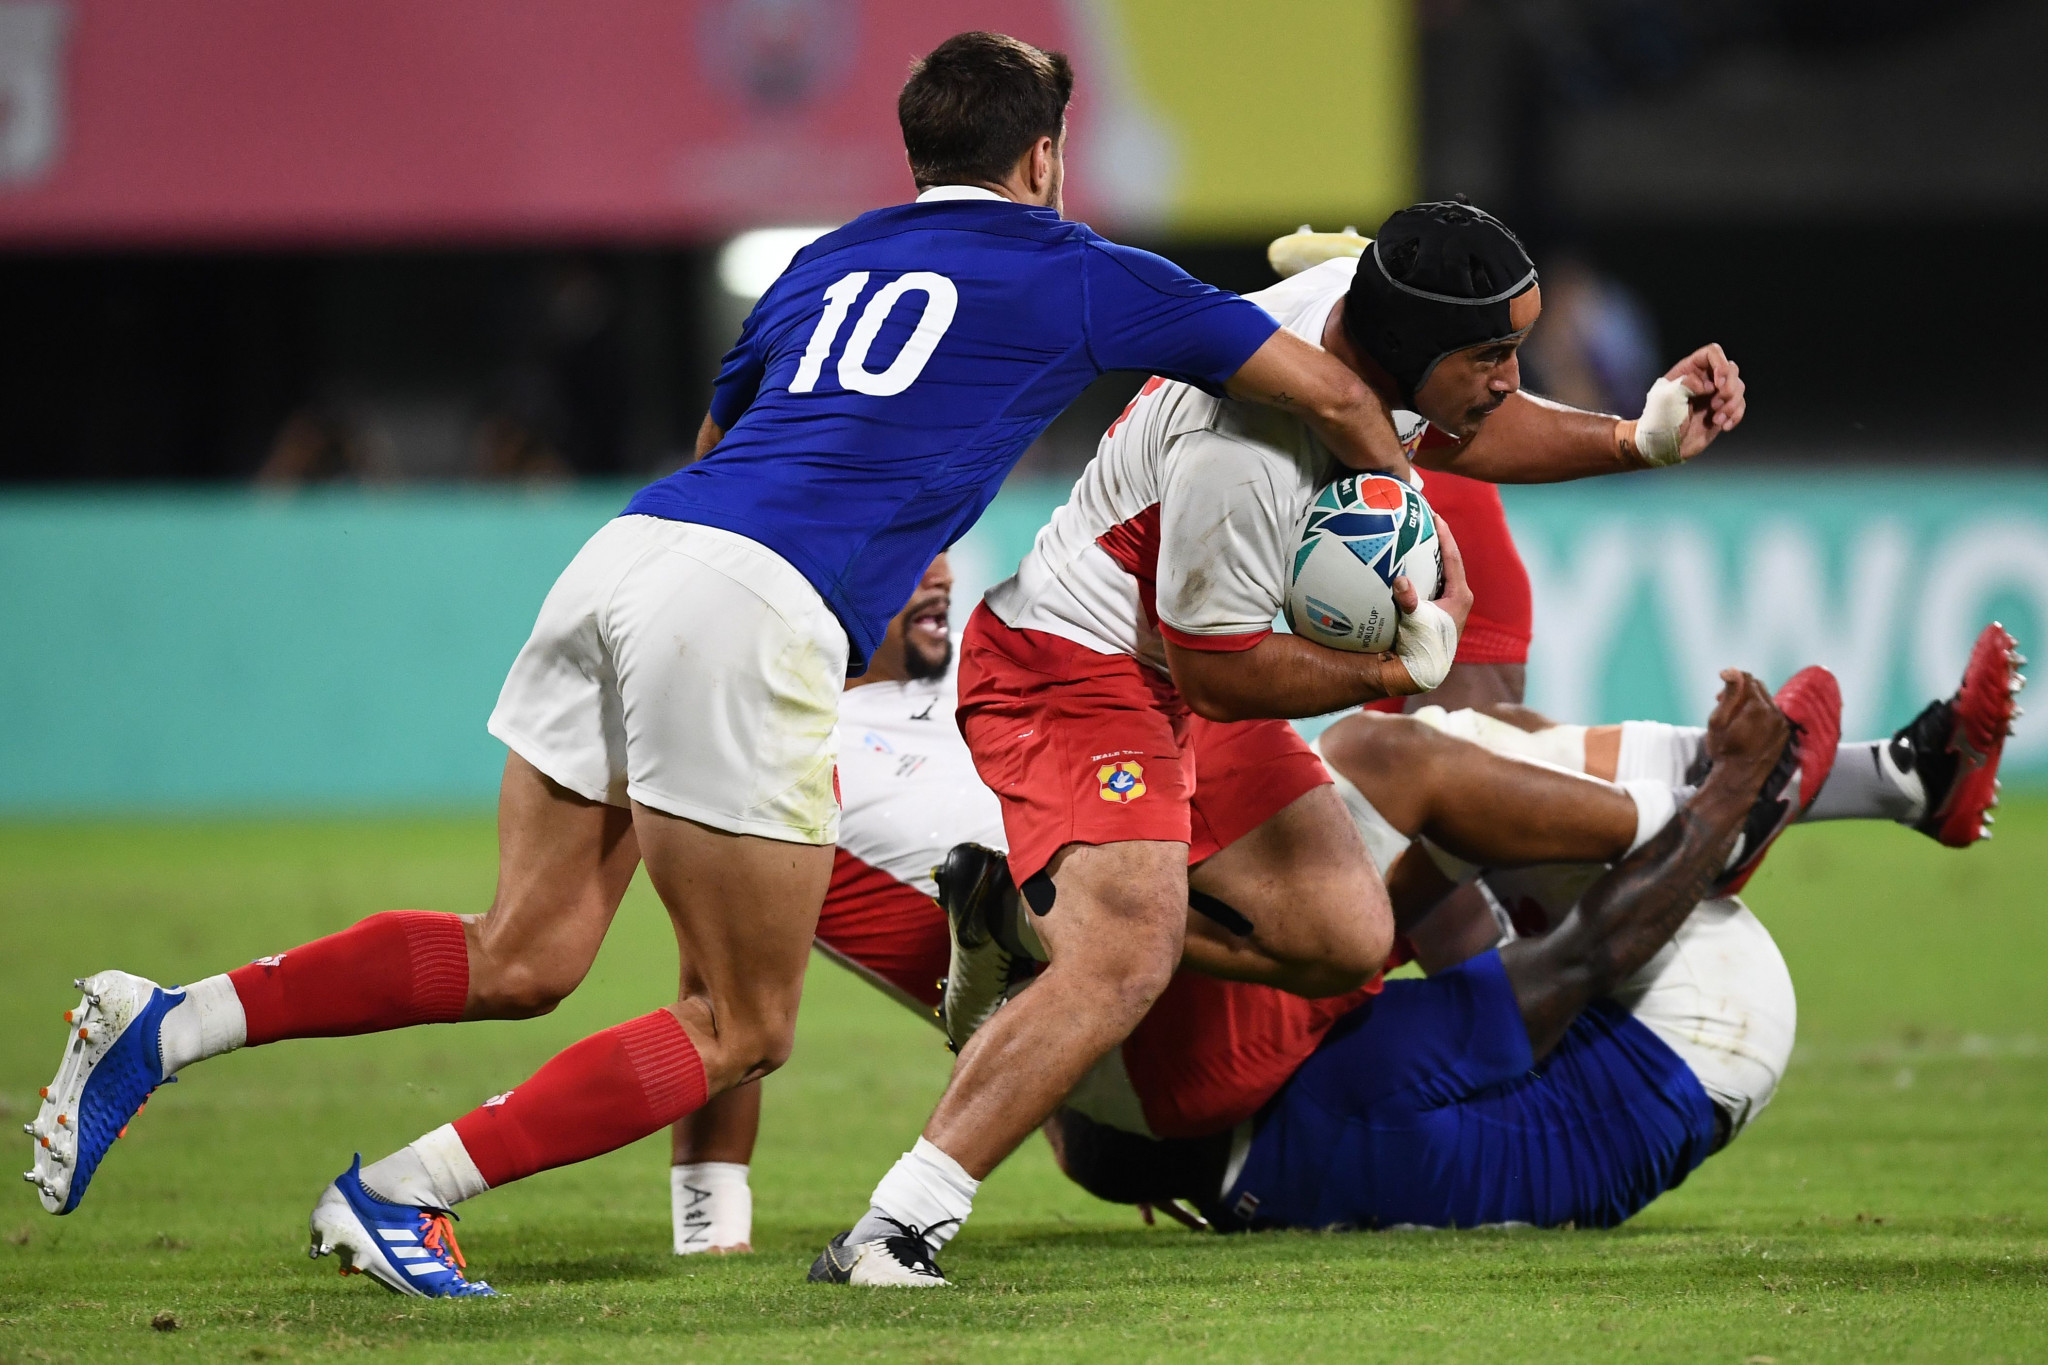 Mali Hingano scored a second Tongan try to bring his team further back into the contest ©Getty Images